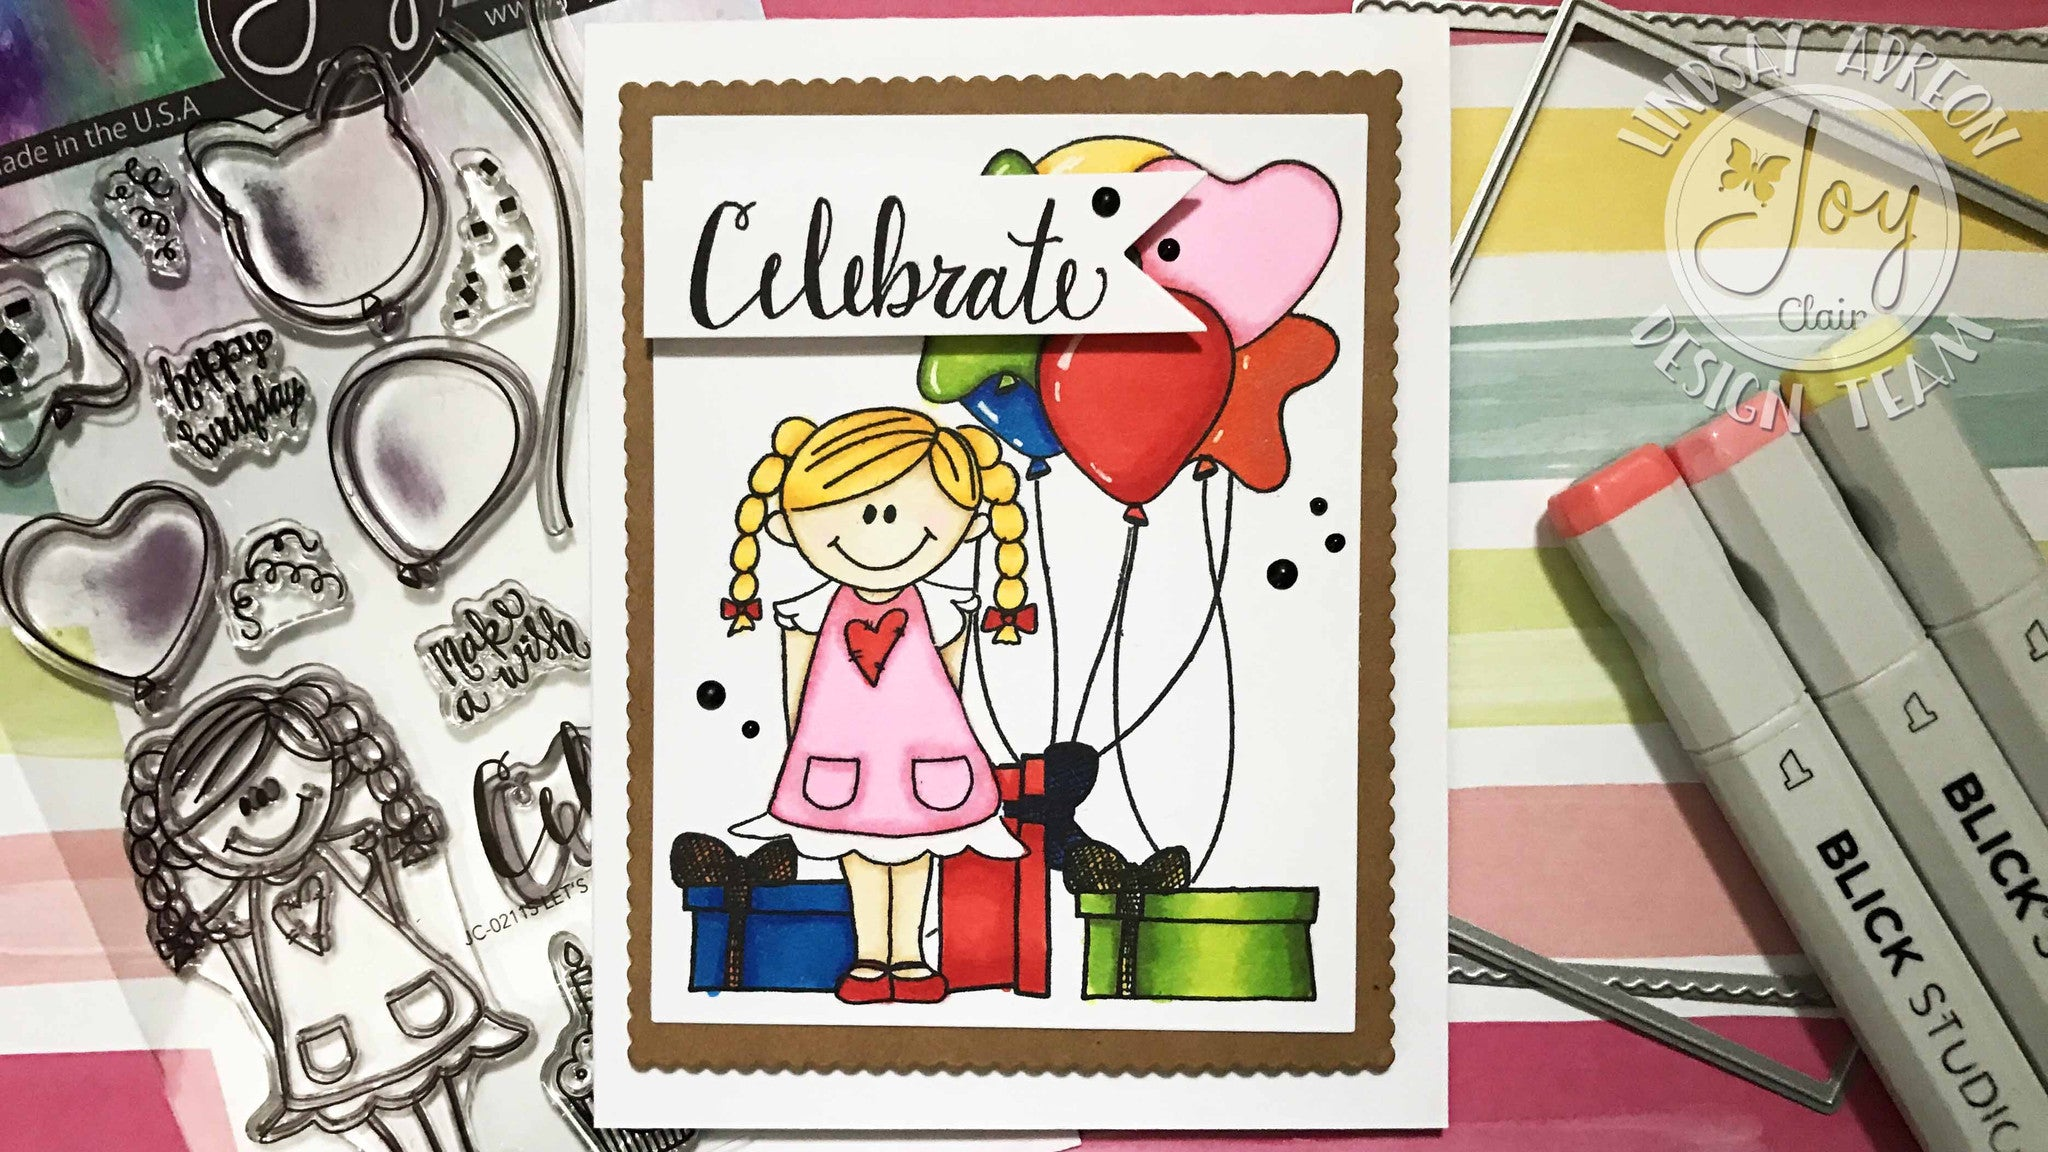 Let's Celebrate Clear Stamps